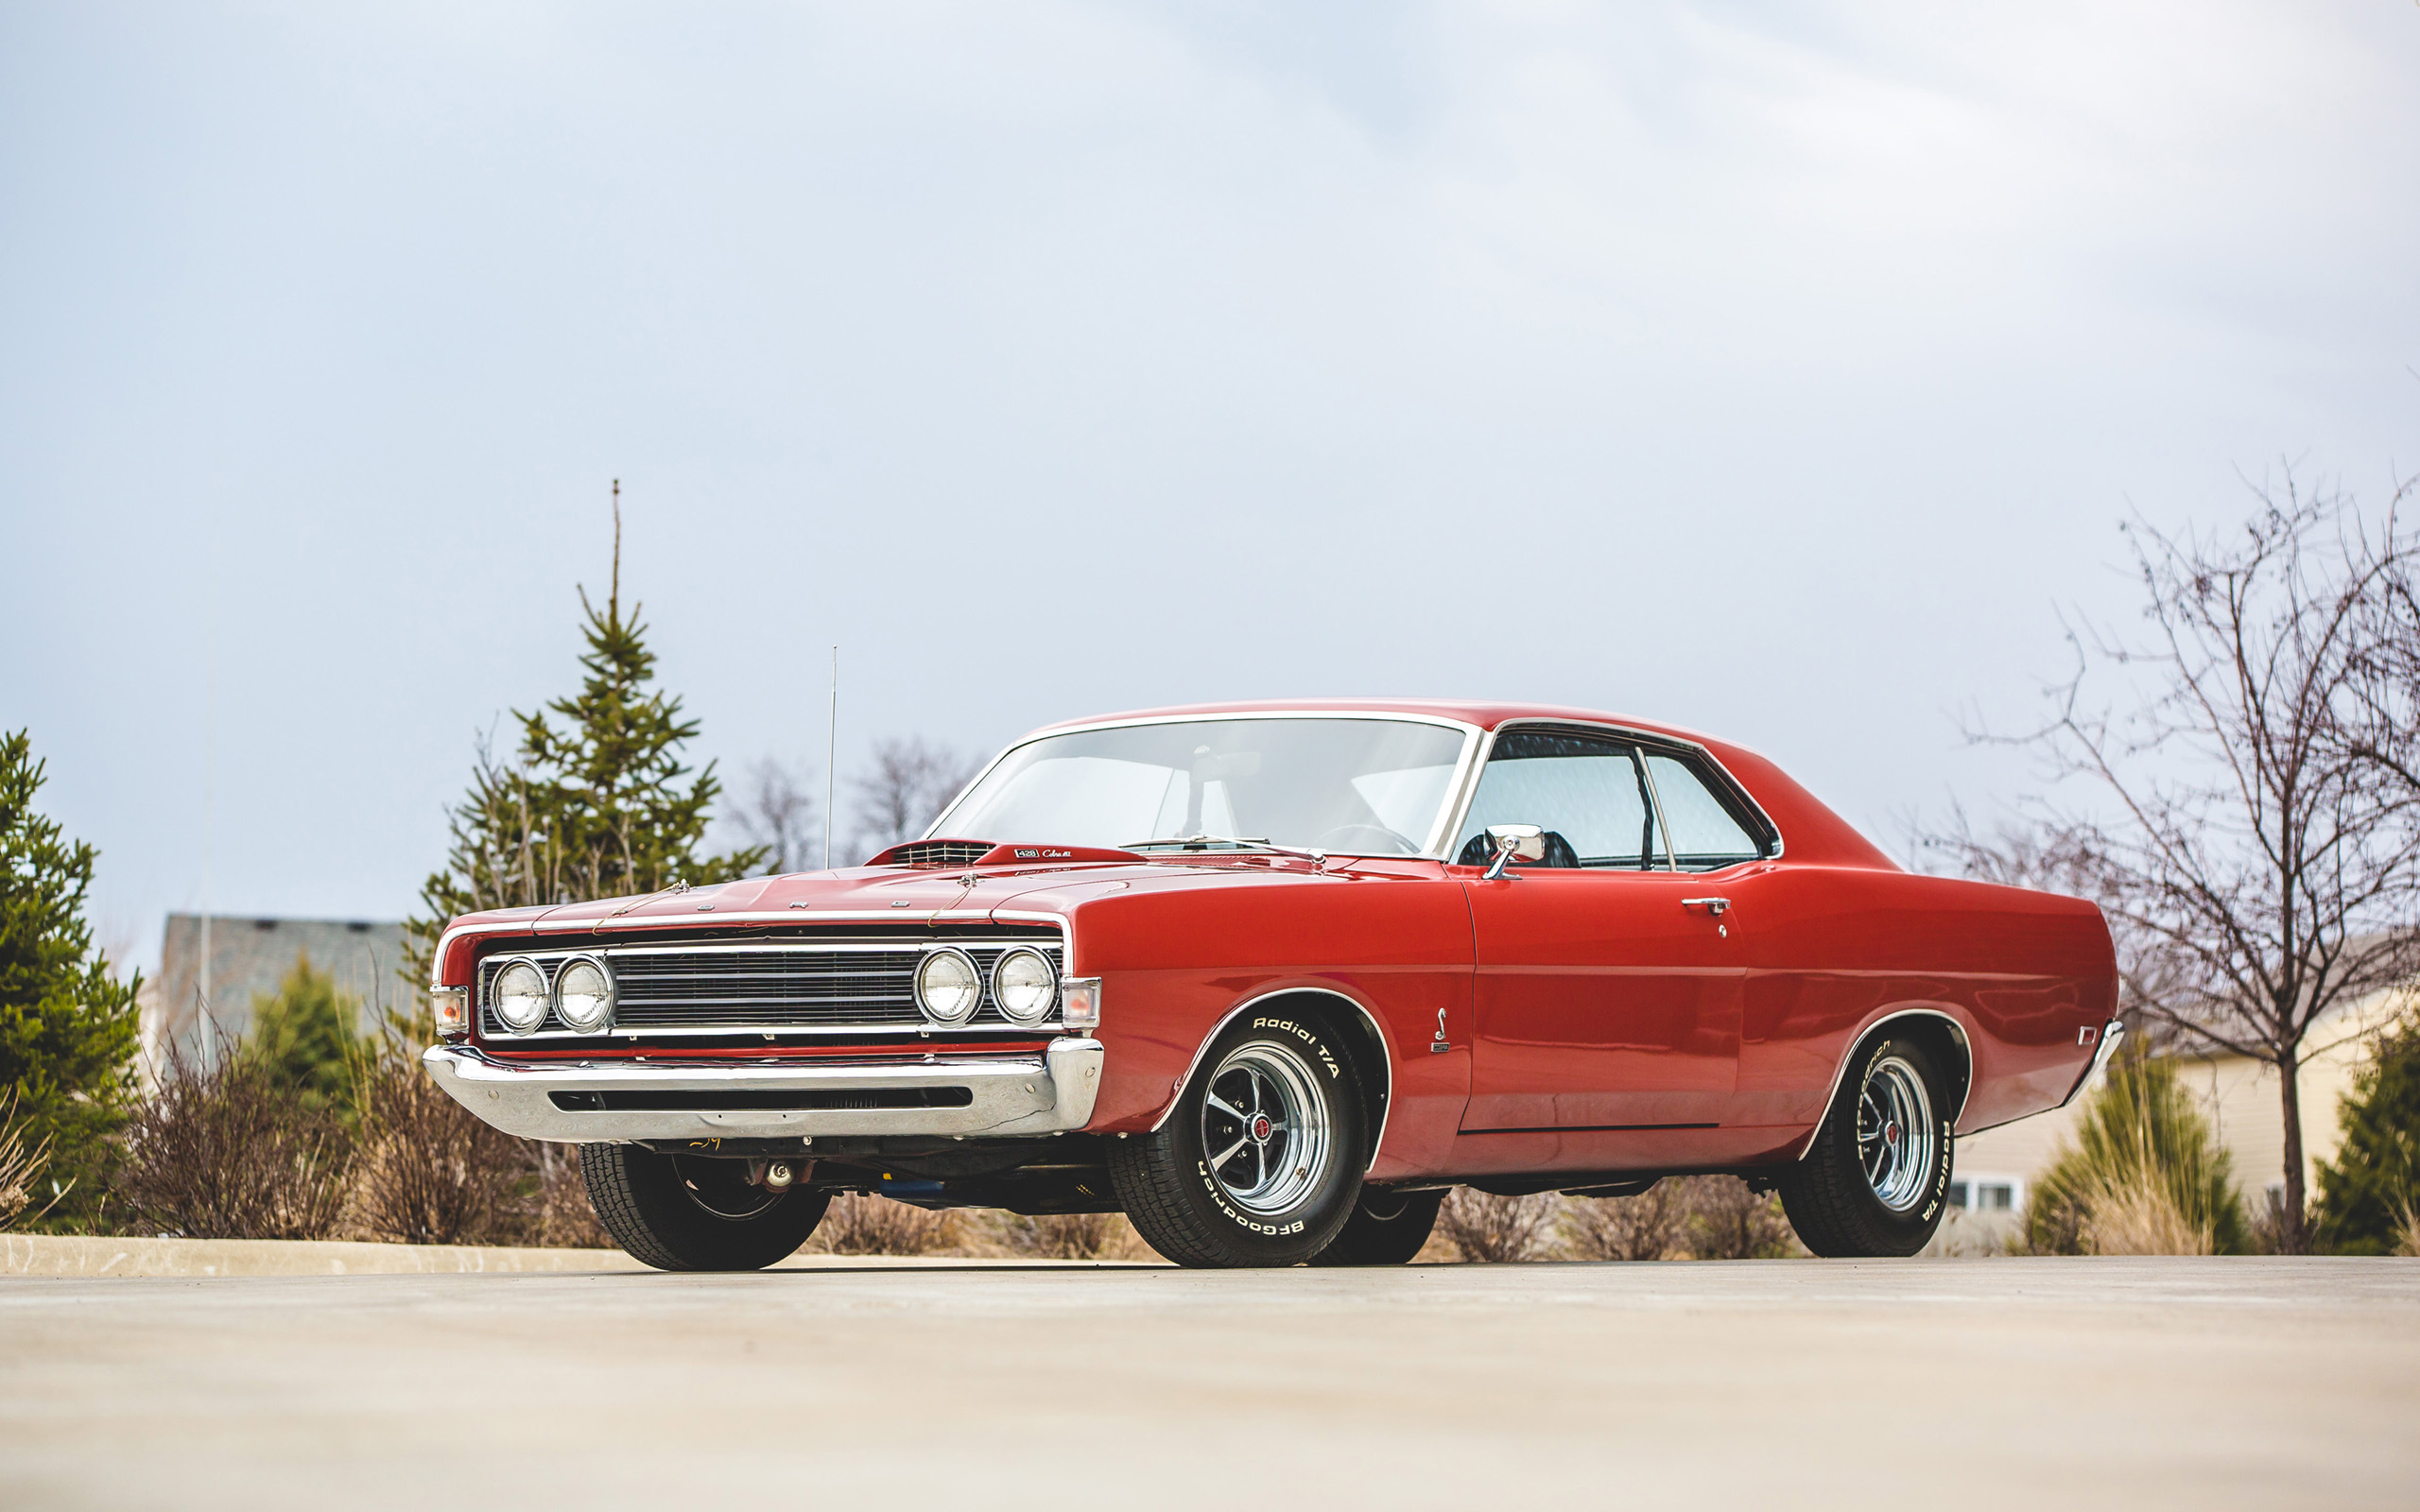 2560x1600 - Ford Torino Wallpapers 21